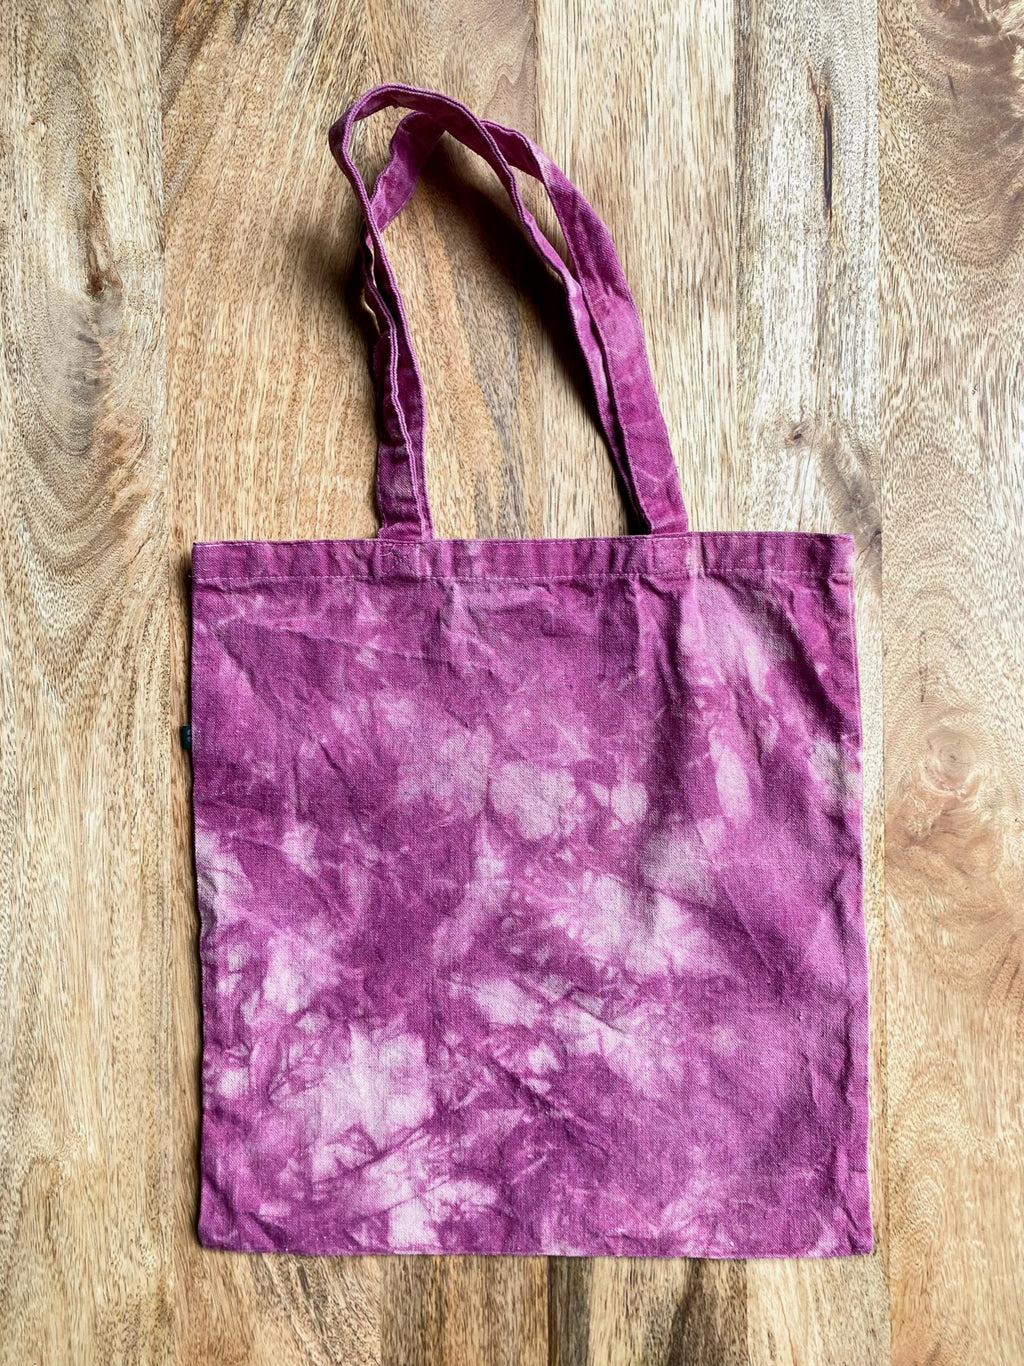 Fleming and Cazalas (F&C) naturally dyed 100% cotton flour sack towel for your kitchen or as a hand towel around the house. Naturally dyed with materials from nature and with zero harsh chemicals. Hand dyed in Austin, Texas with a slow process.